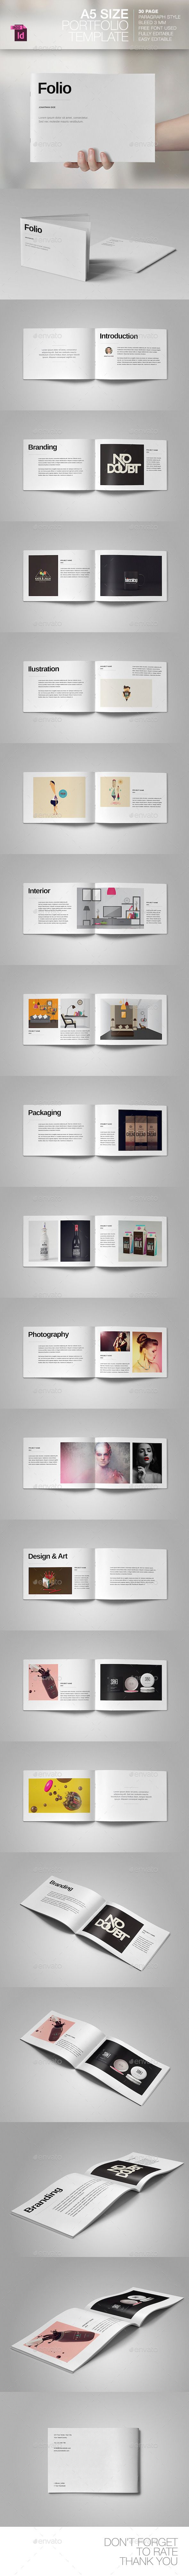 A5 Portfolio Template | Indesign templates, A5 and Template